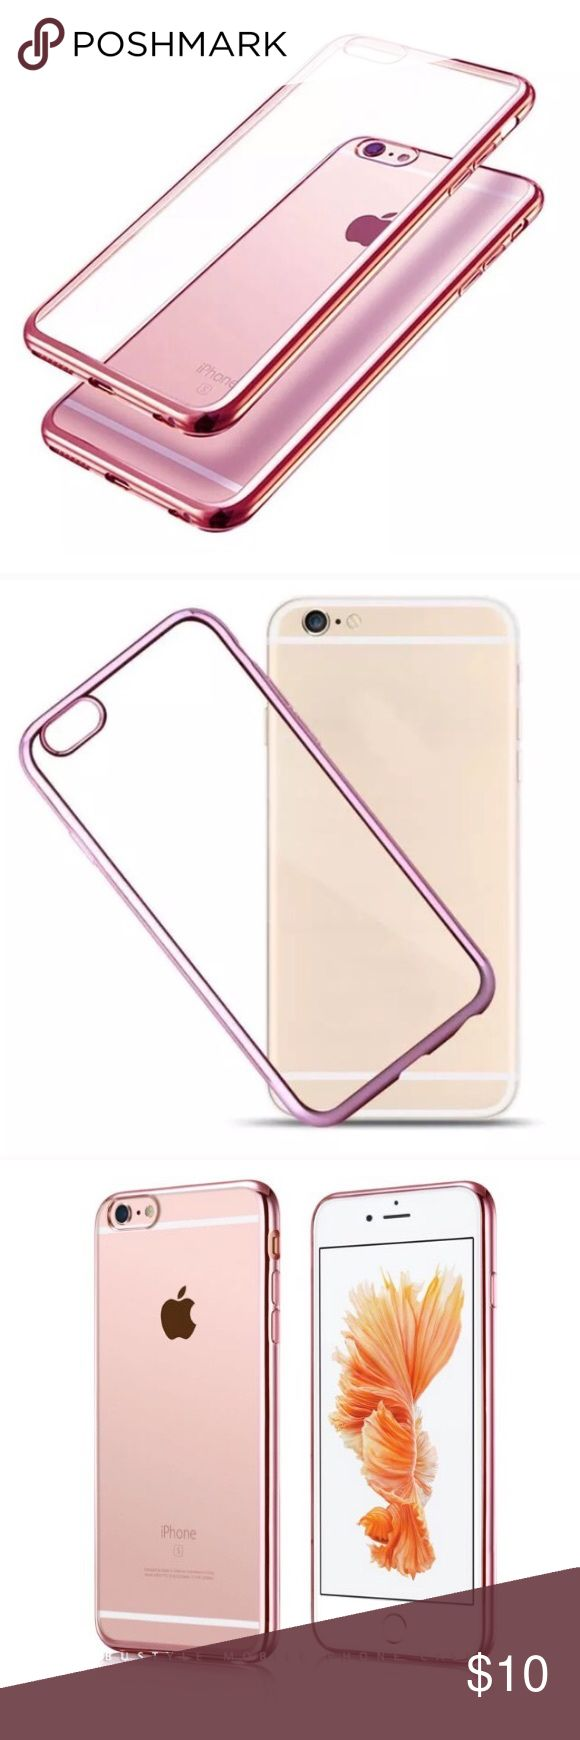 Soft Clear Iphone6/6S Case. Silicone clear slim Iphone6/6S case with Rubin rose shiny sides. Lightweight. Good protection. Accessories Phone Cases